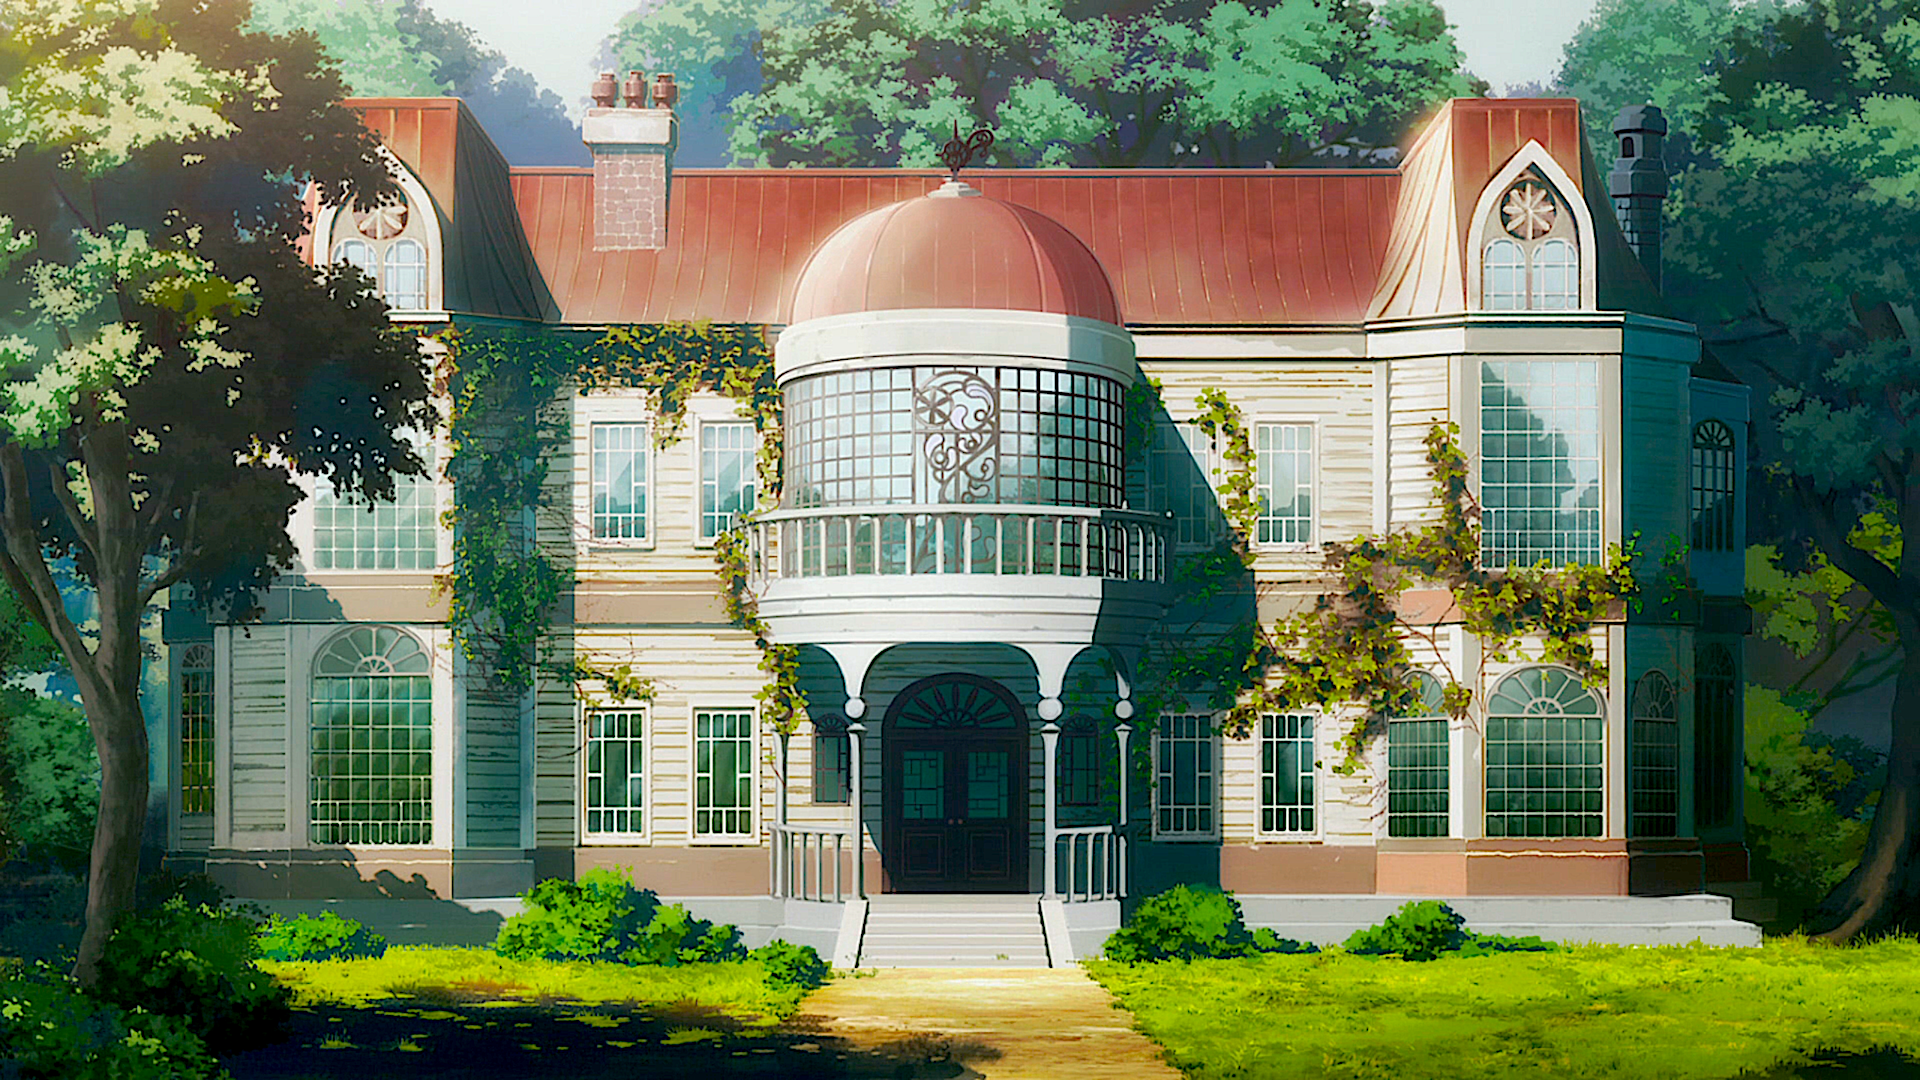 Anime - Darling in the FranXX  Nature Tree Anime Architecture Wallpaper